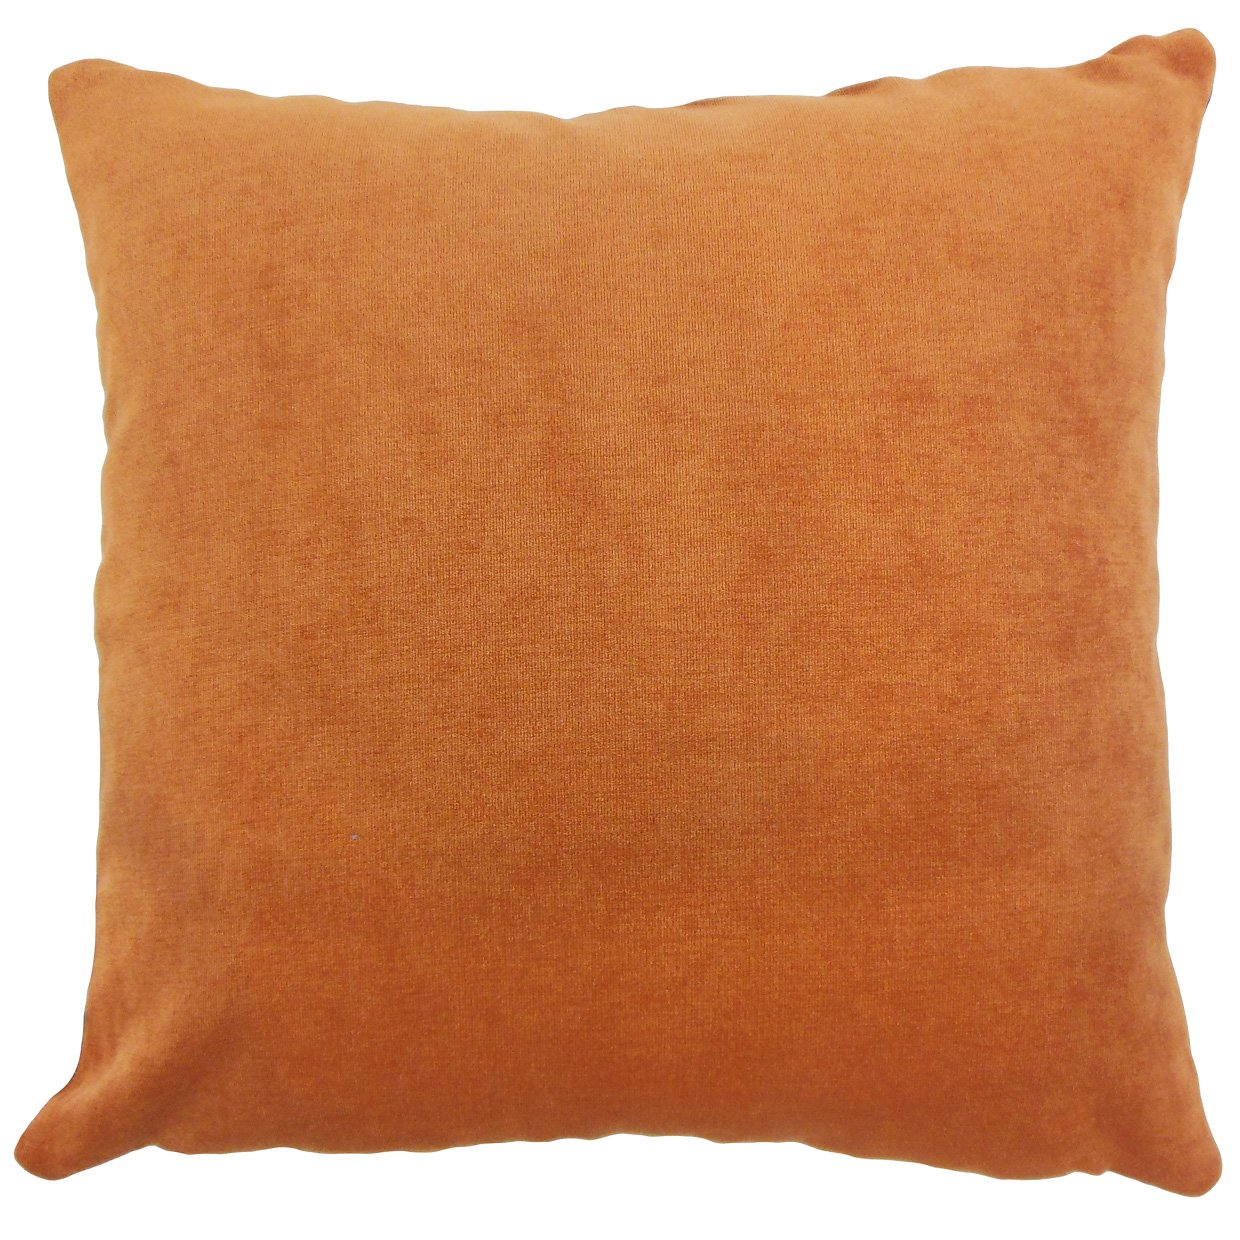 Ginger The Pillow Collection P18-BAR-M9583-GINGER-P91N9 Xyla Solid Pillow